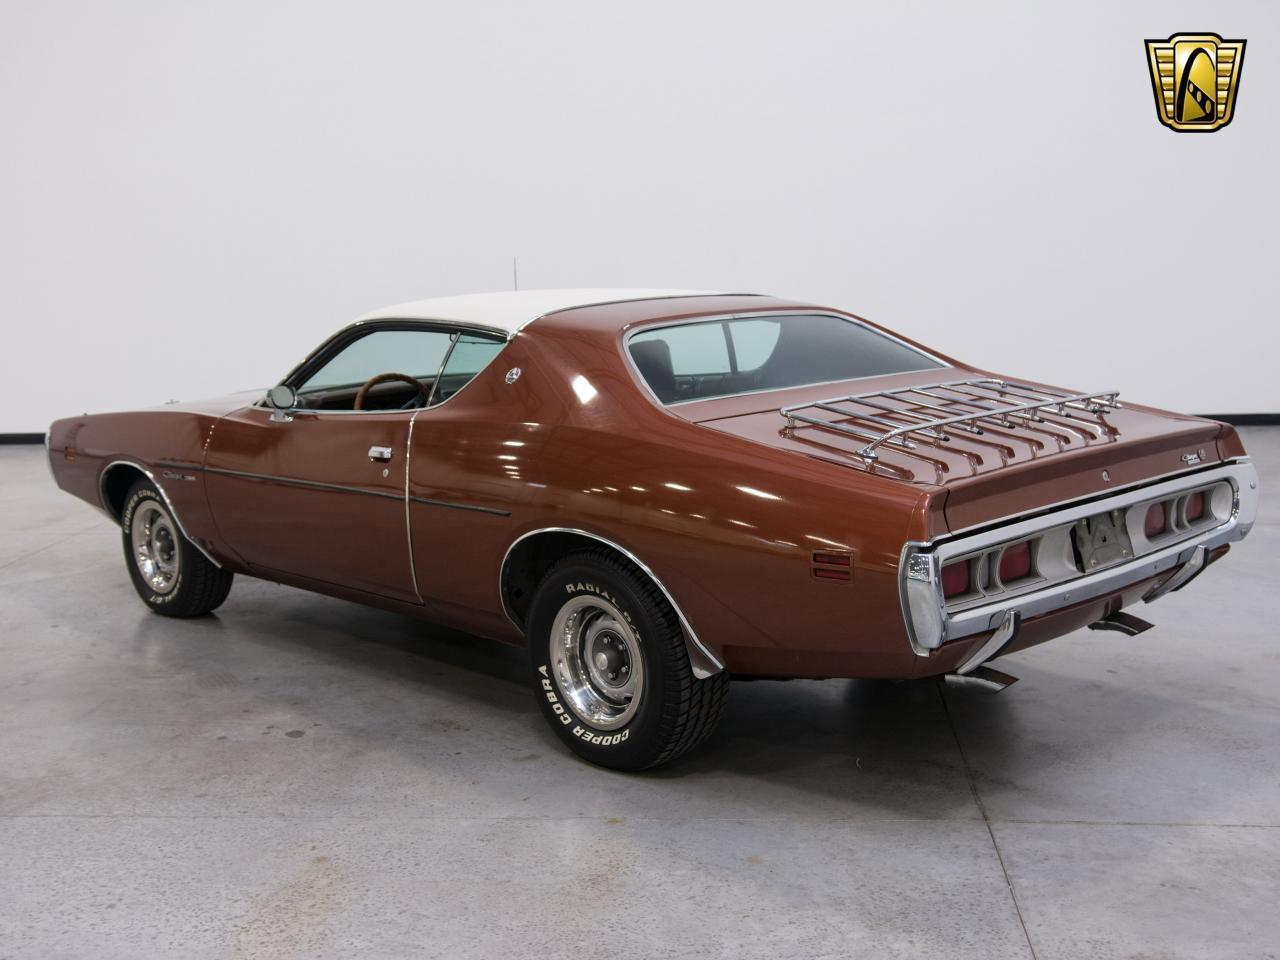 Large Picture of '71 Dodge Charger located in Kenosha Wisconsin Offered by Gateway Classic Cars - Milwaukee - KEDX